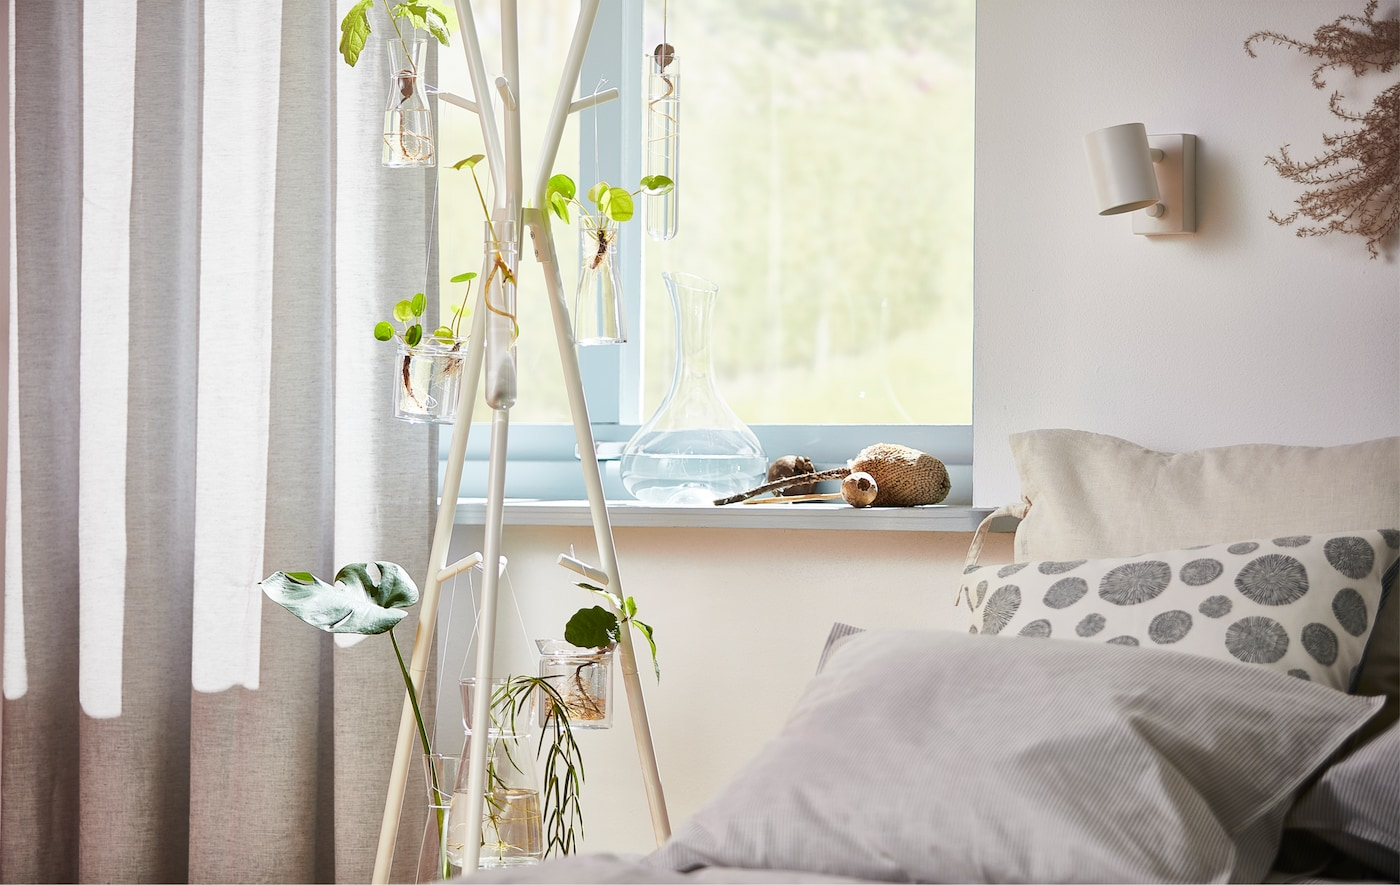 A white EKRAR hat and coat hanger is decorated with homegrown baby plants, in front of a window.